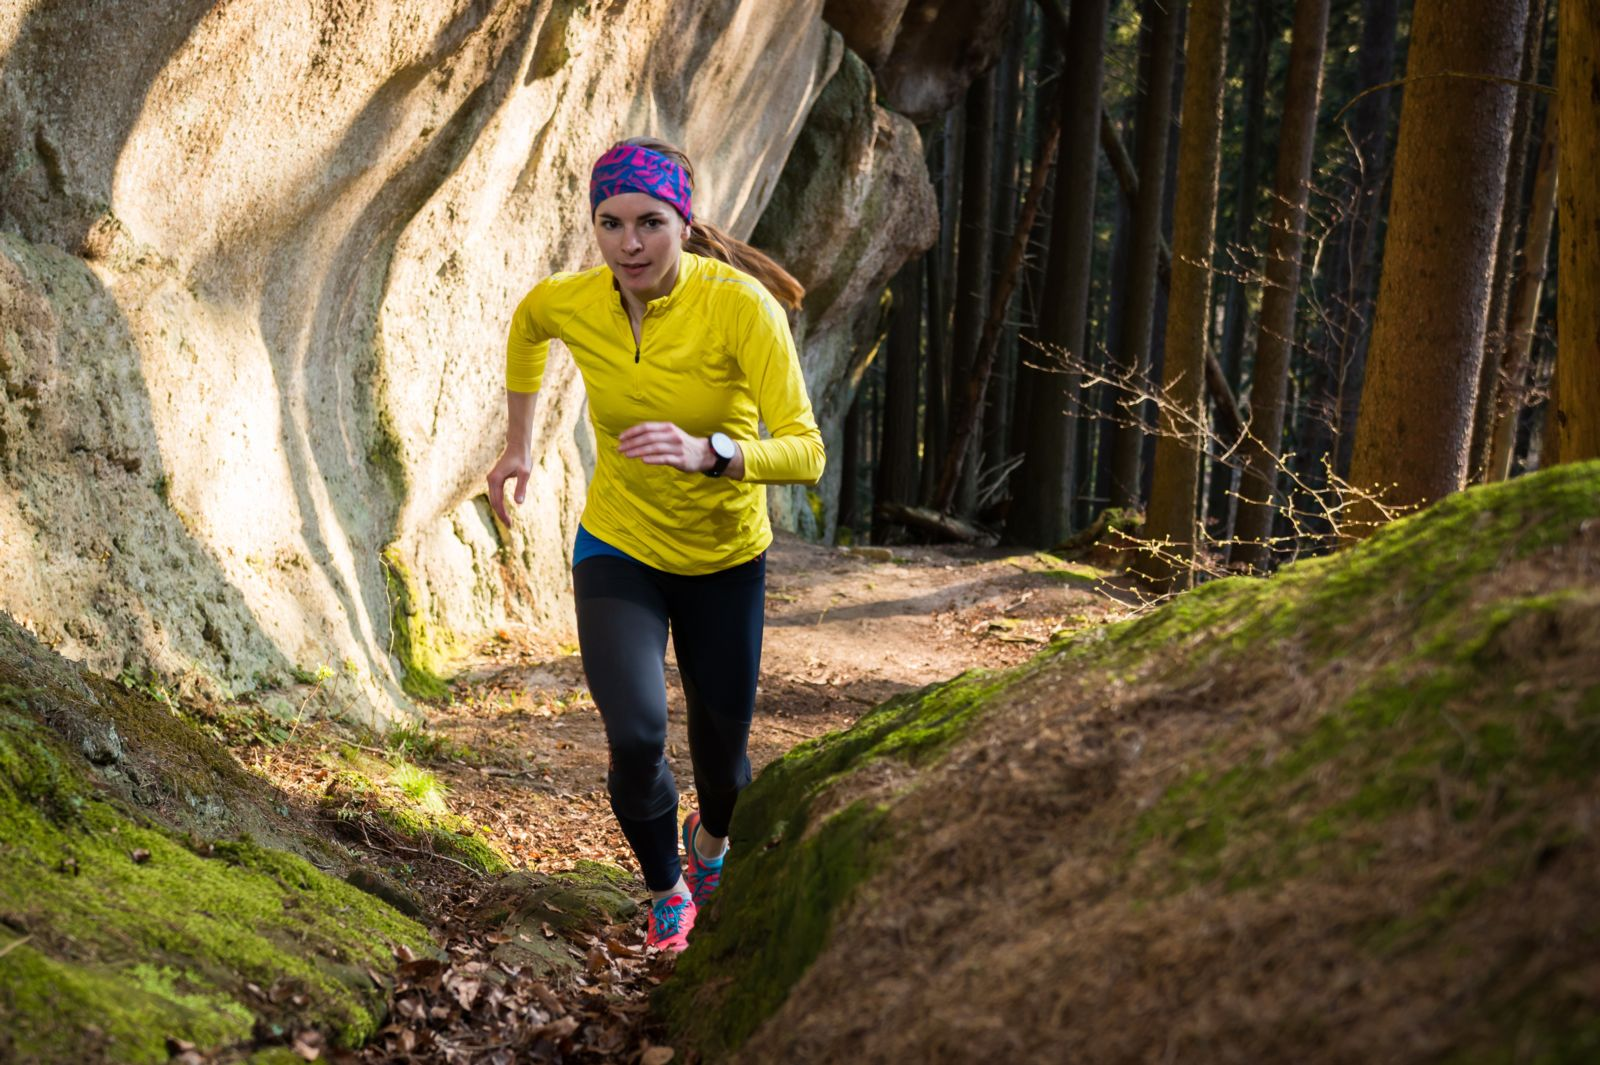 Heading out to run the trails? Make sure to stretch before you start!